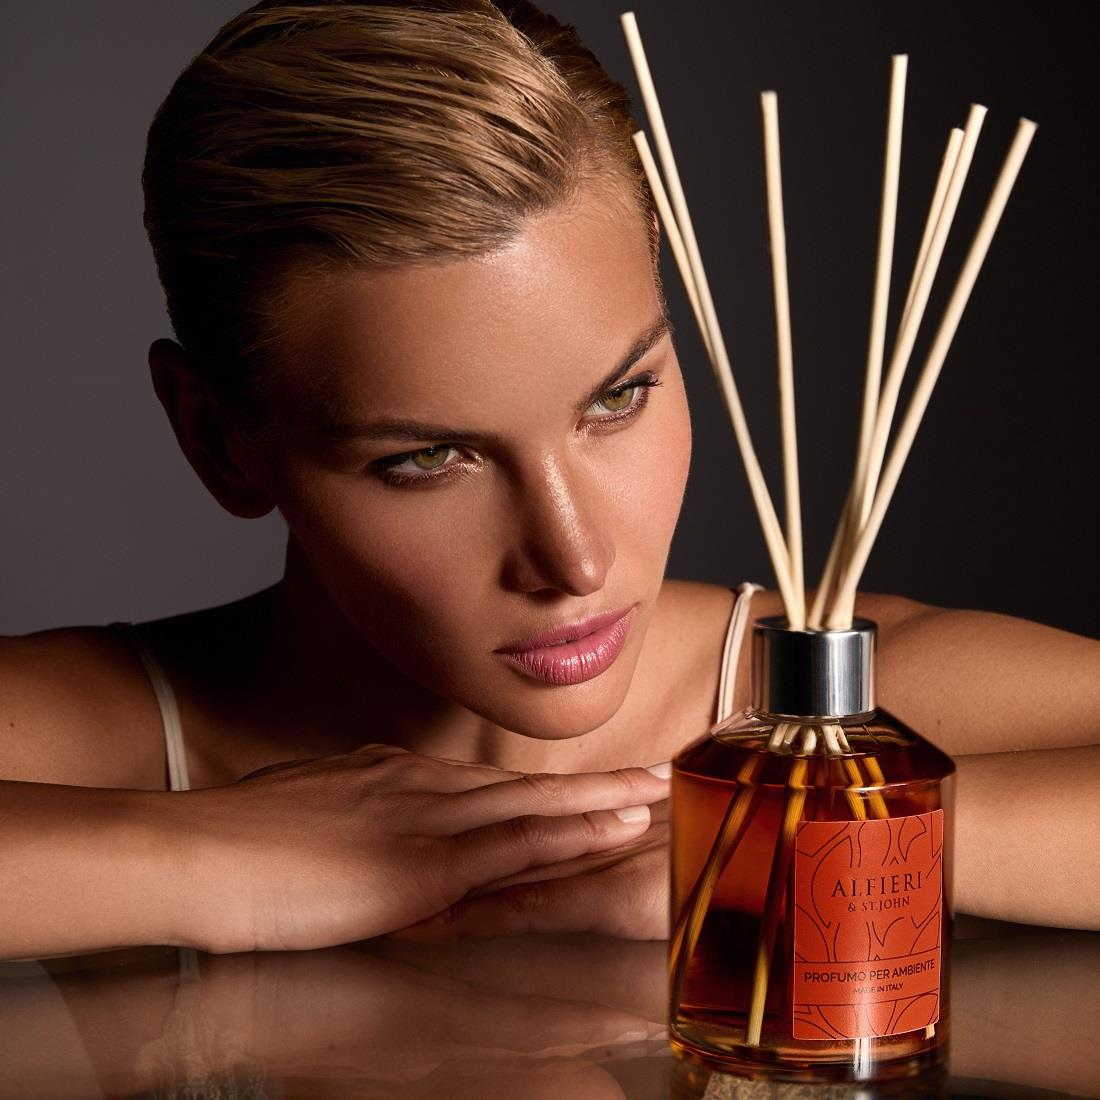 The perfect gift for any occasion. The fragrance of the Alfieri & St John diffuser is composed of tarot orange, california orange, blood orange and blond orange essential oil.